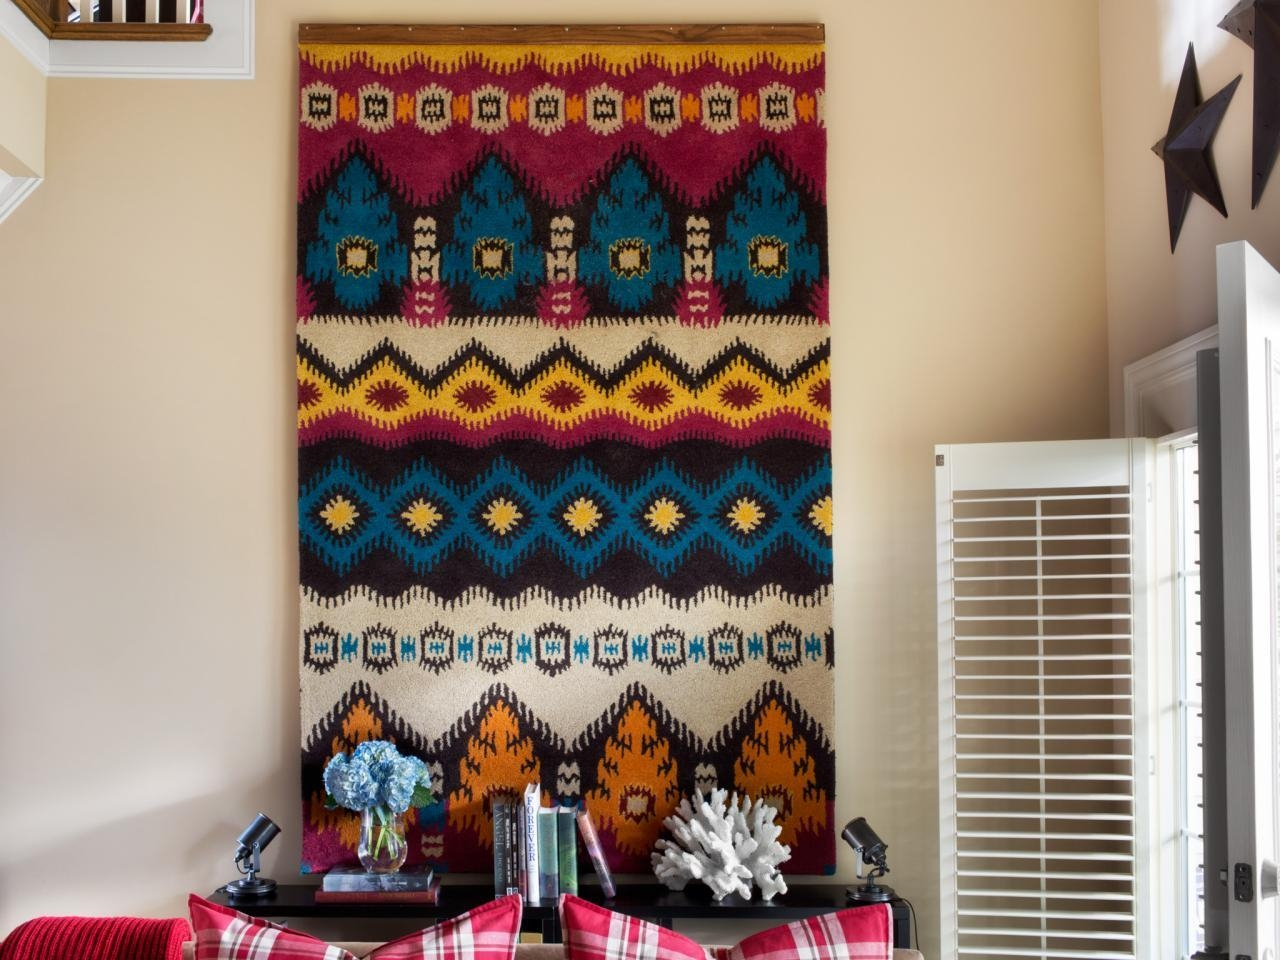 How To Turn A Rug Into A Wall Art Tapestry | Hgtv With Regard To Turn Pictures Into Wall Art (View 14 of 20)